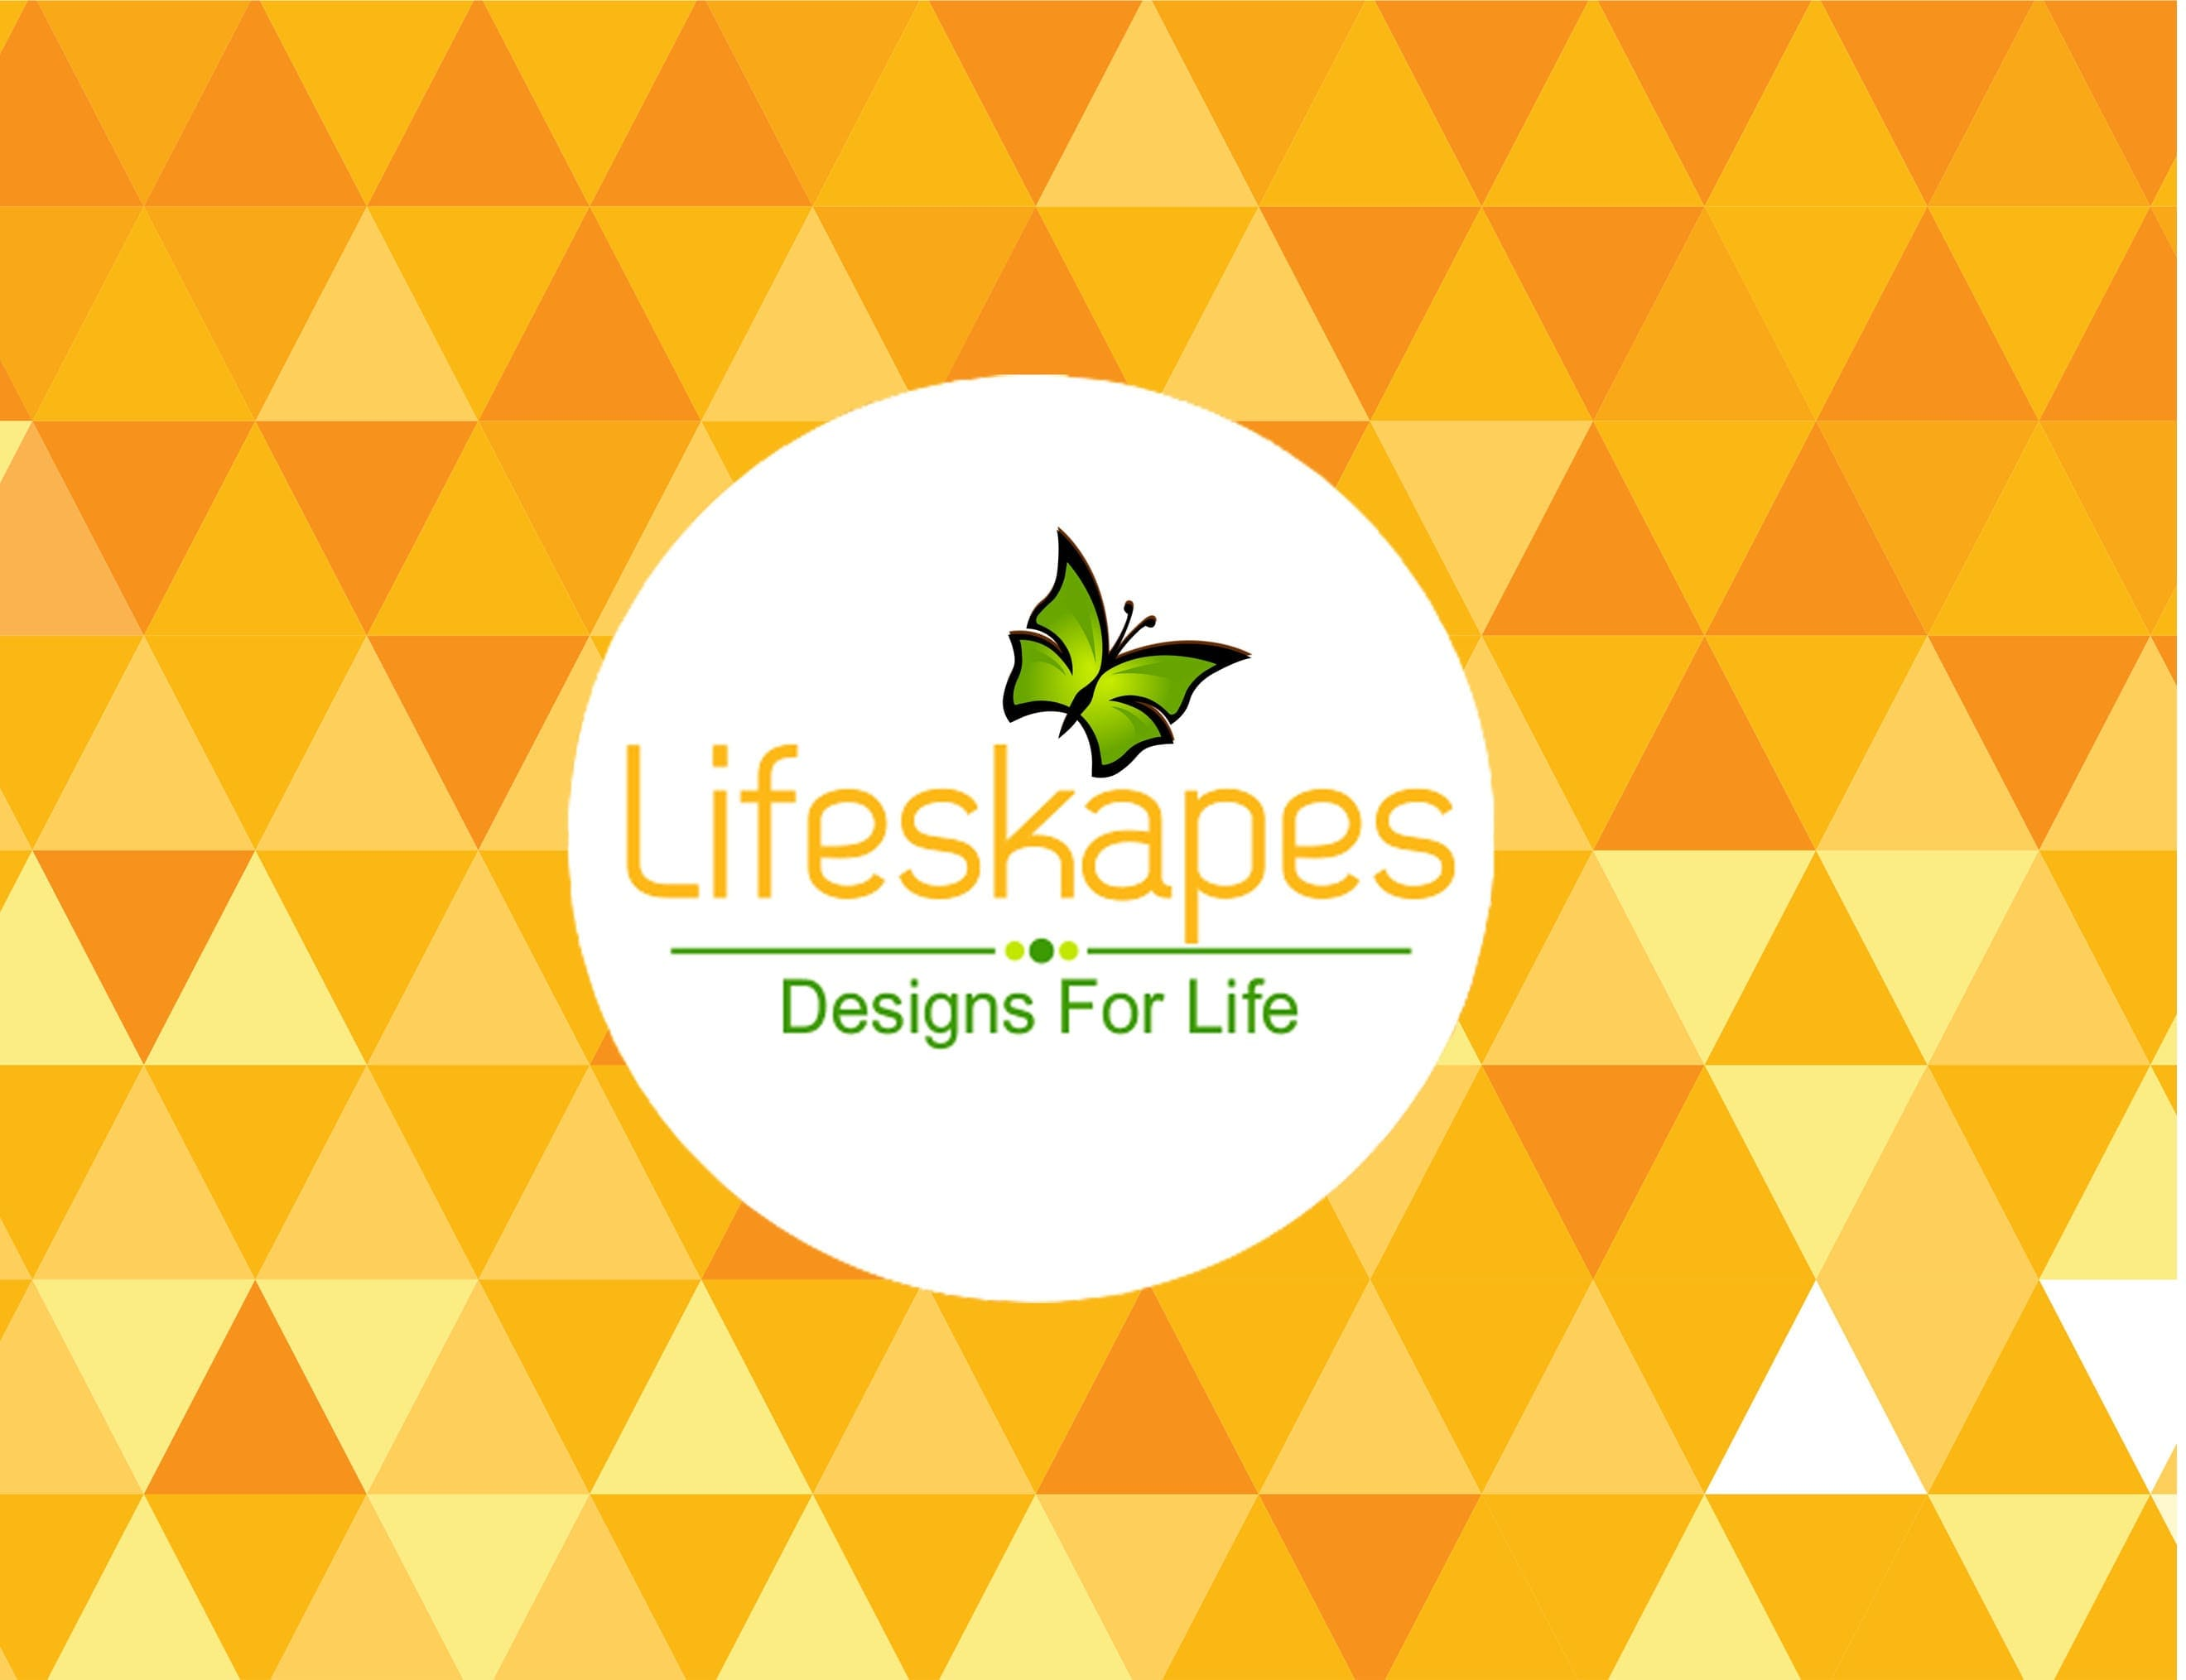 Lifeskapes Designs